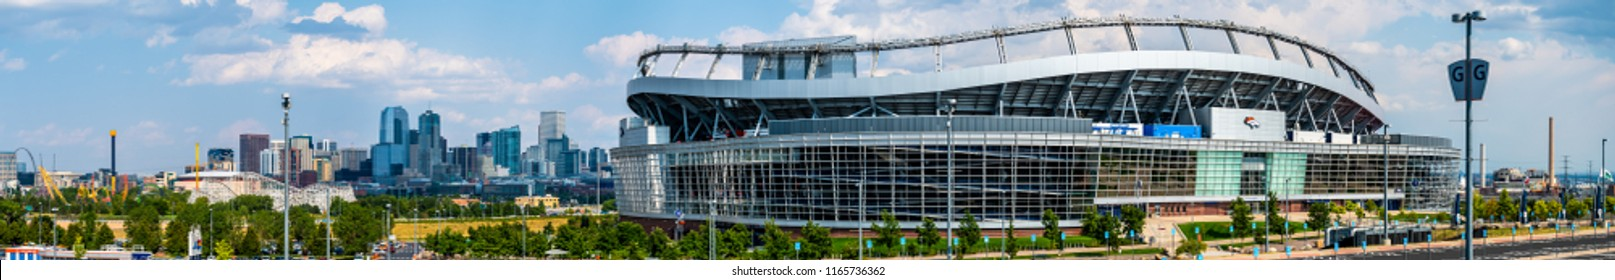 Denver Colorado USA July 22, 2018 A panoramic photograph of the NFL Denver Broncos stadium at Mile High with the downtown area of Denever in the background